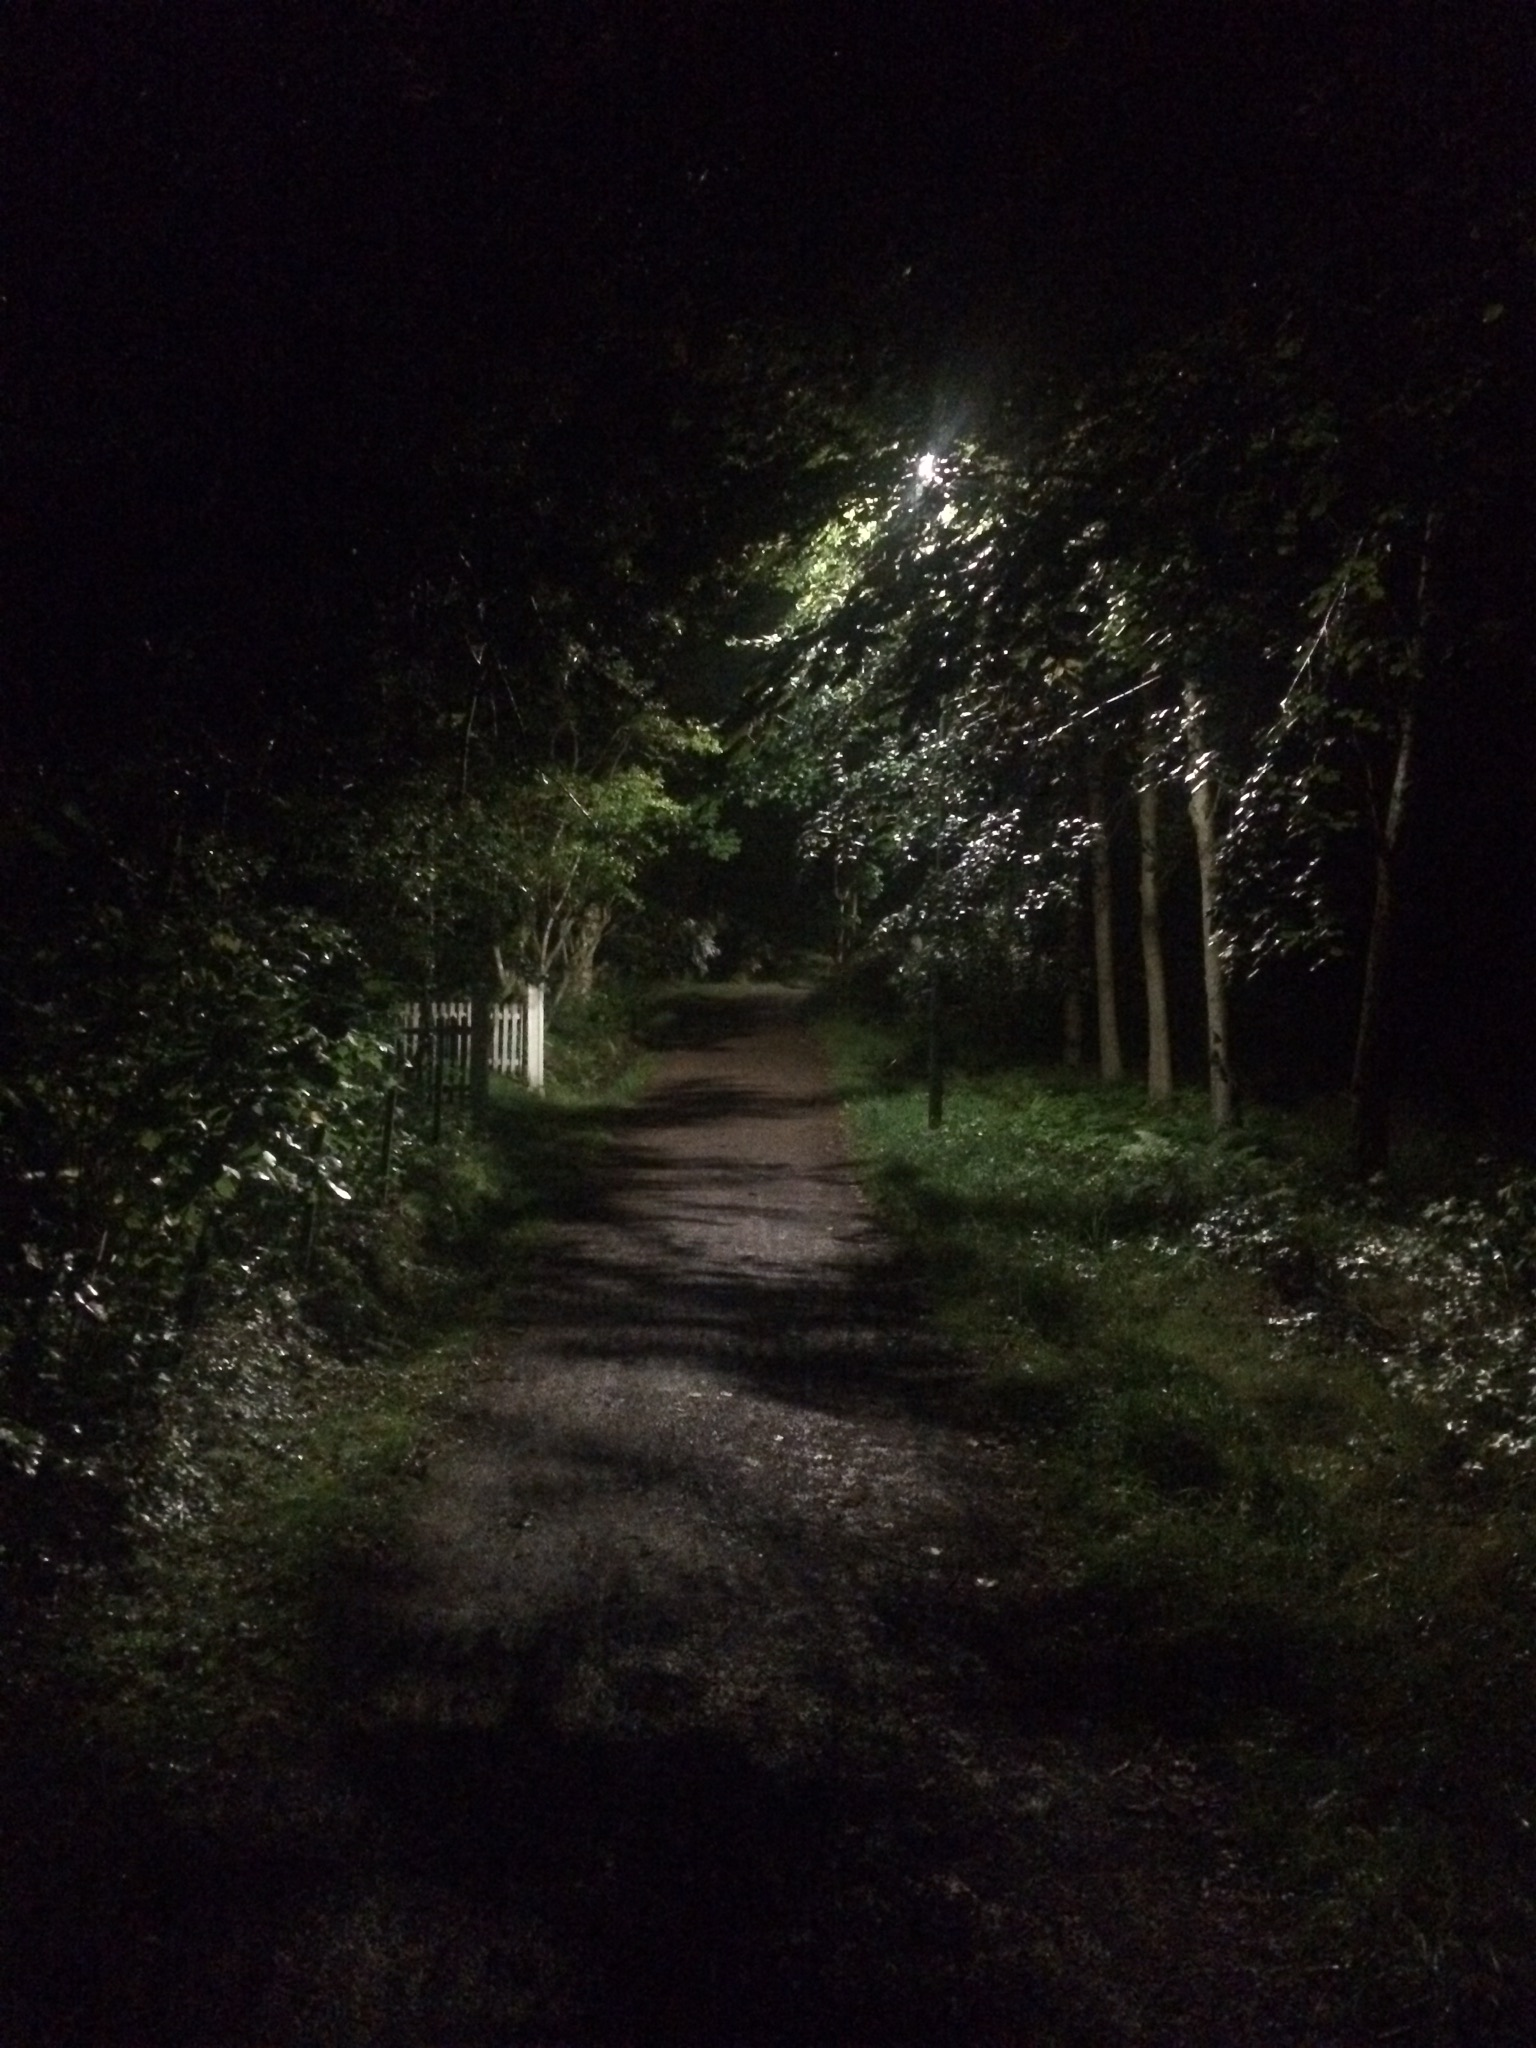 The trail pass the house - summer night